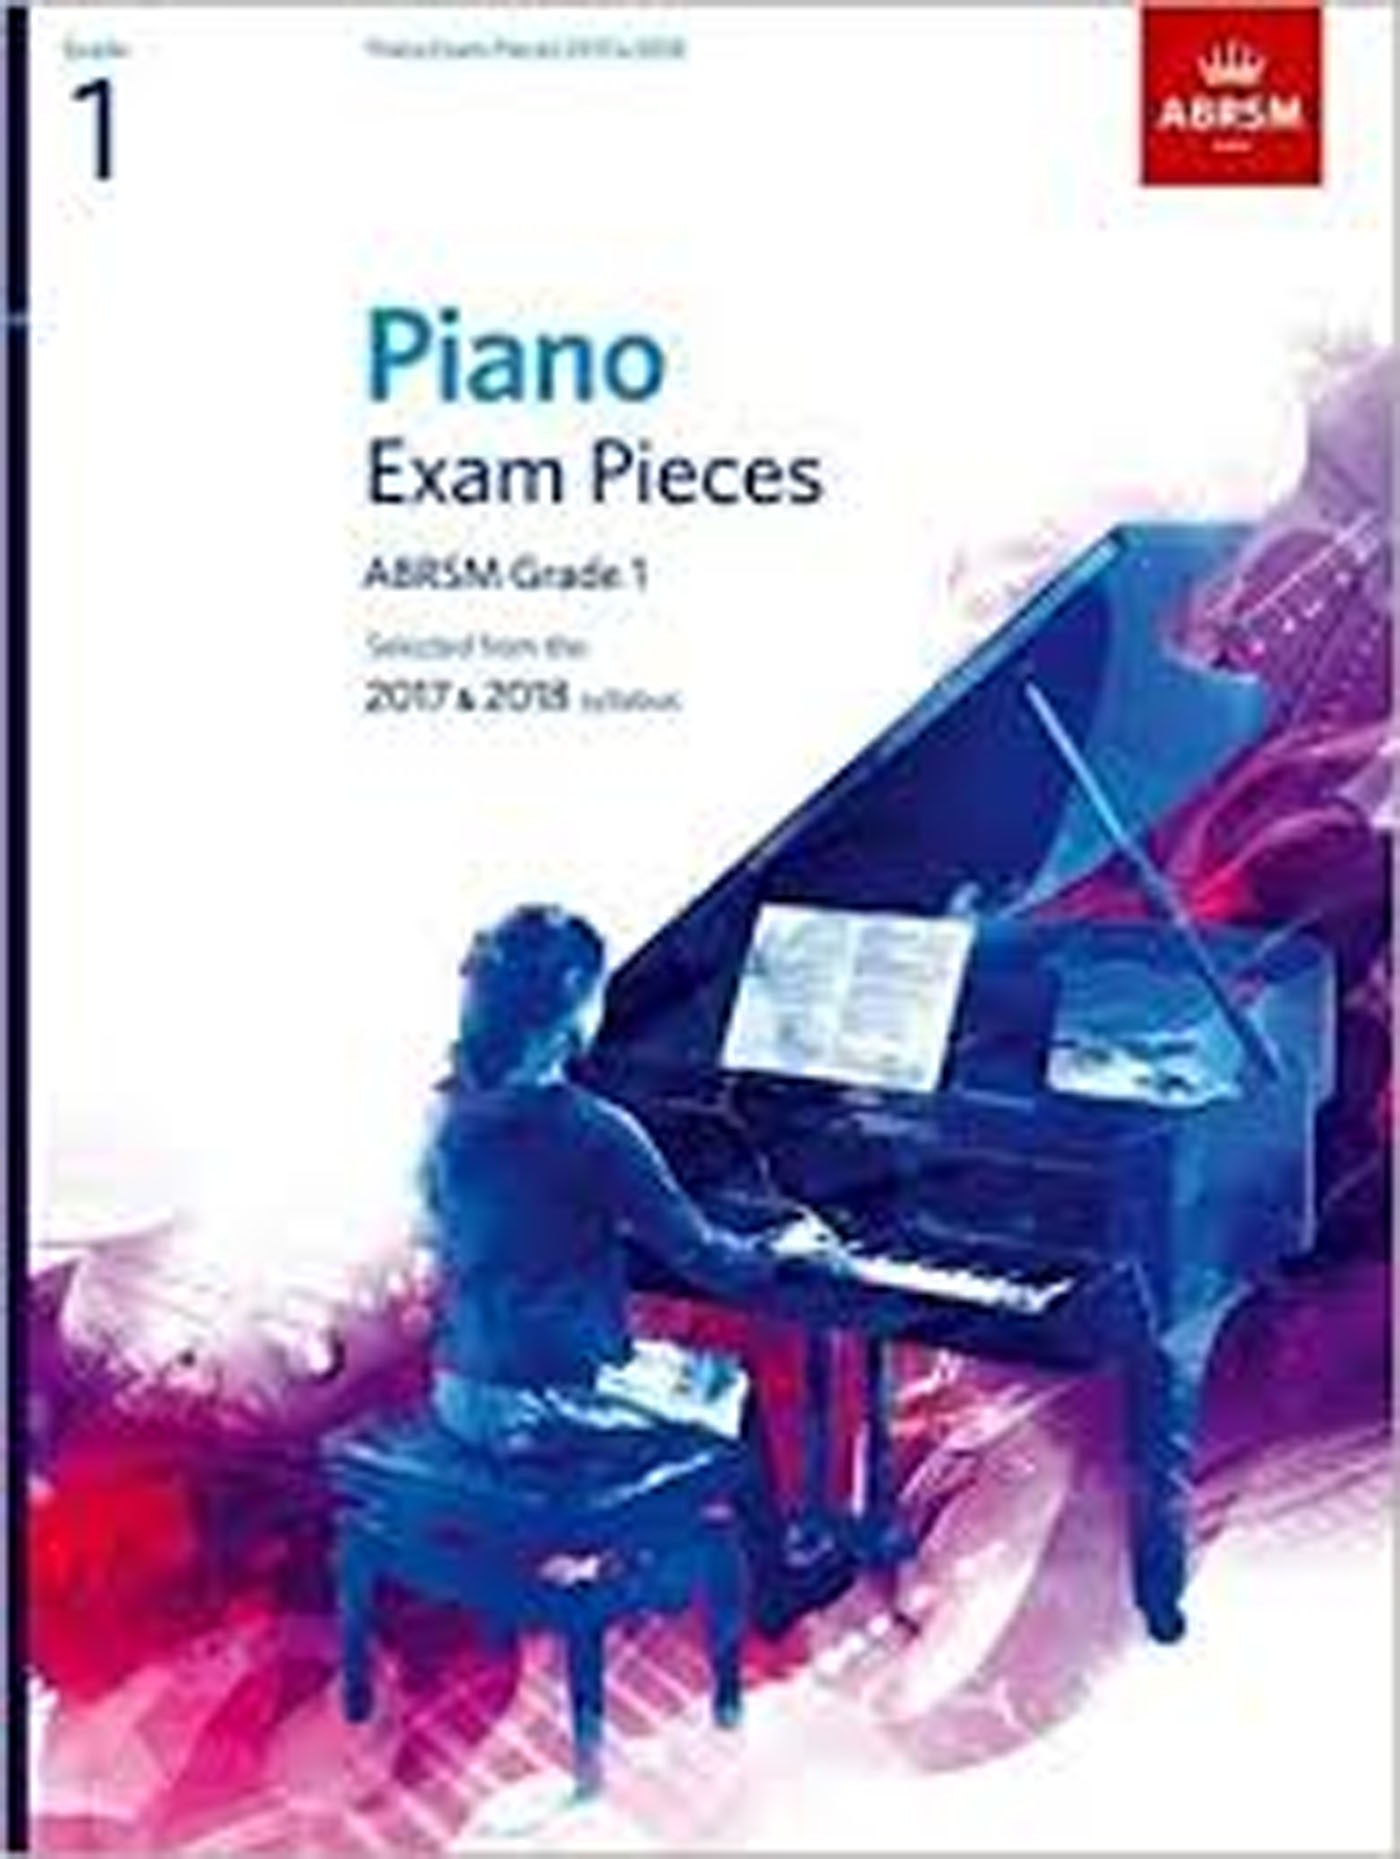 Piano Exam Pieces ABRSM Grade 1 2017 & 2018 Syllabus Book Exam Prep S135